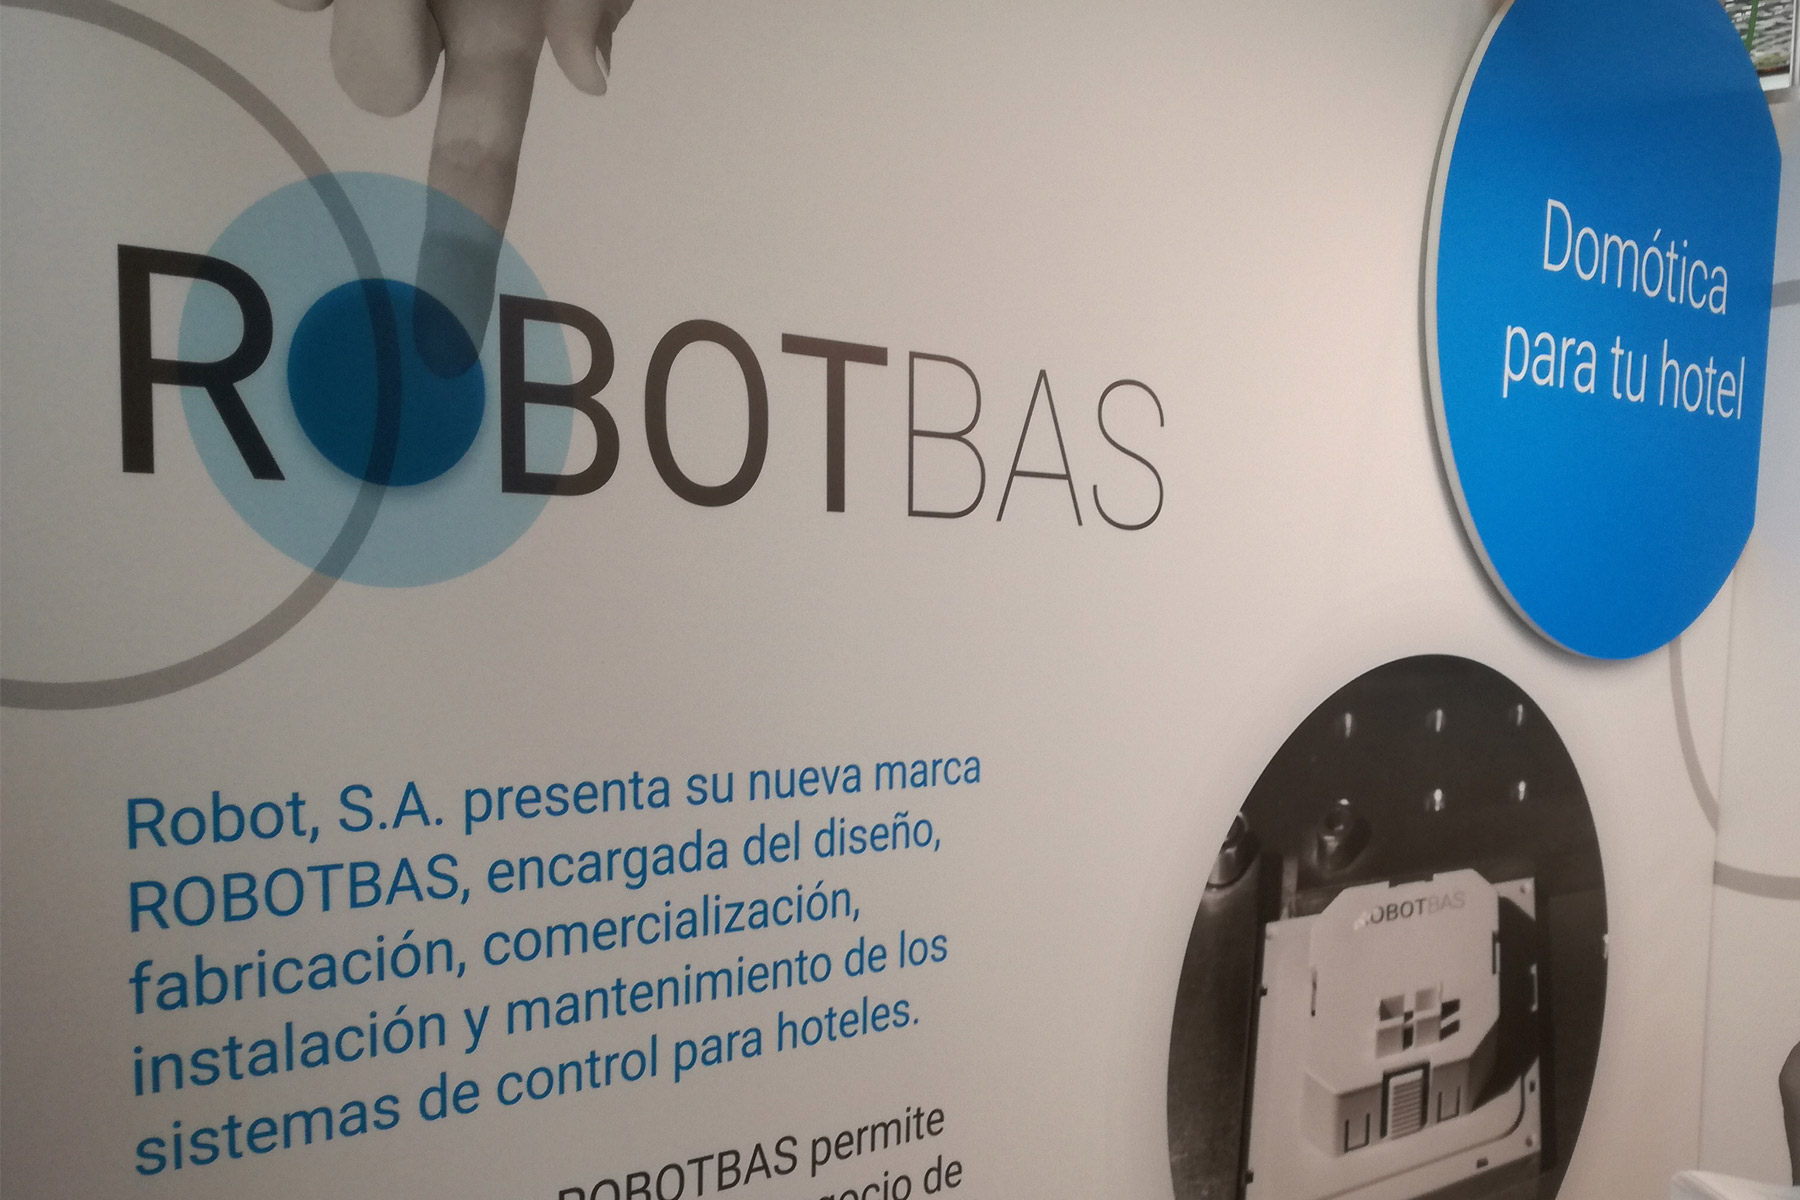 Robot, S.A. launches its new brand ROBOTBAS